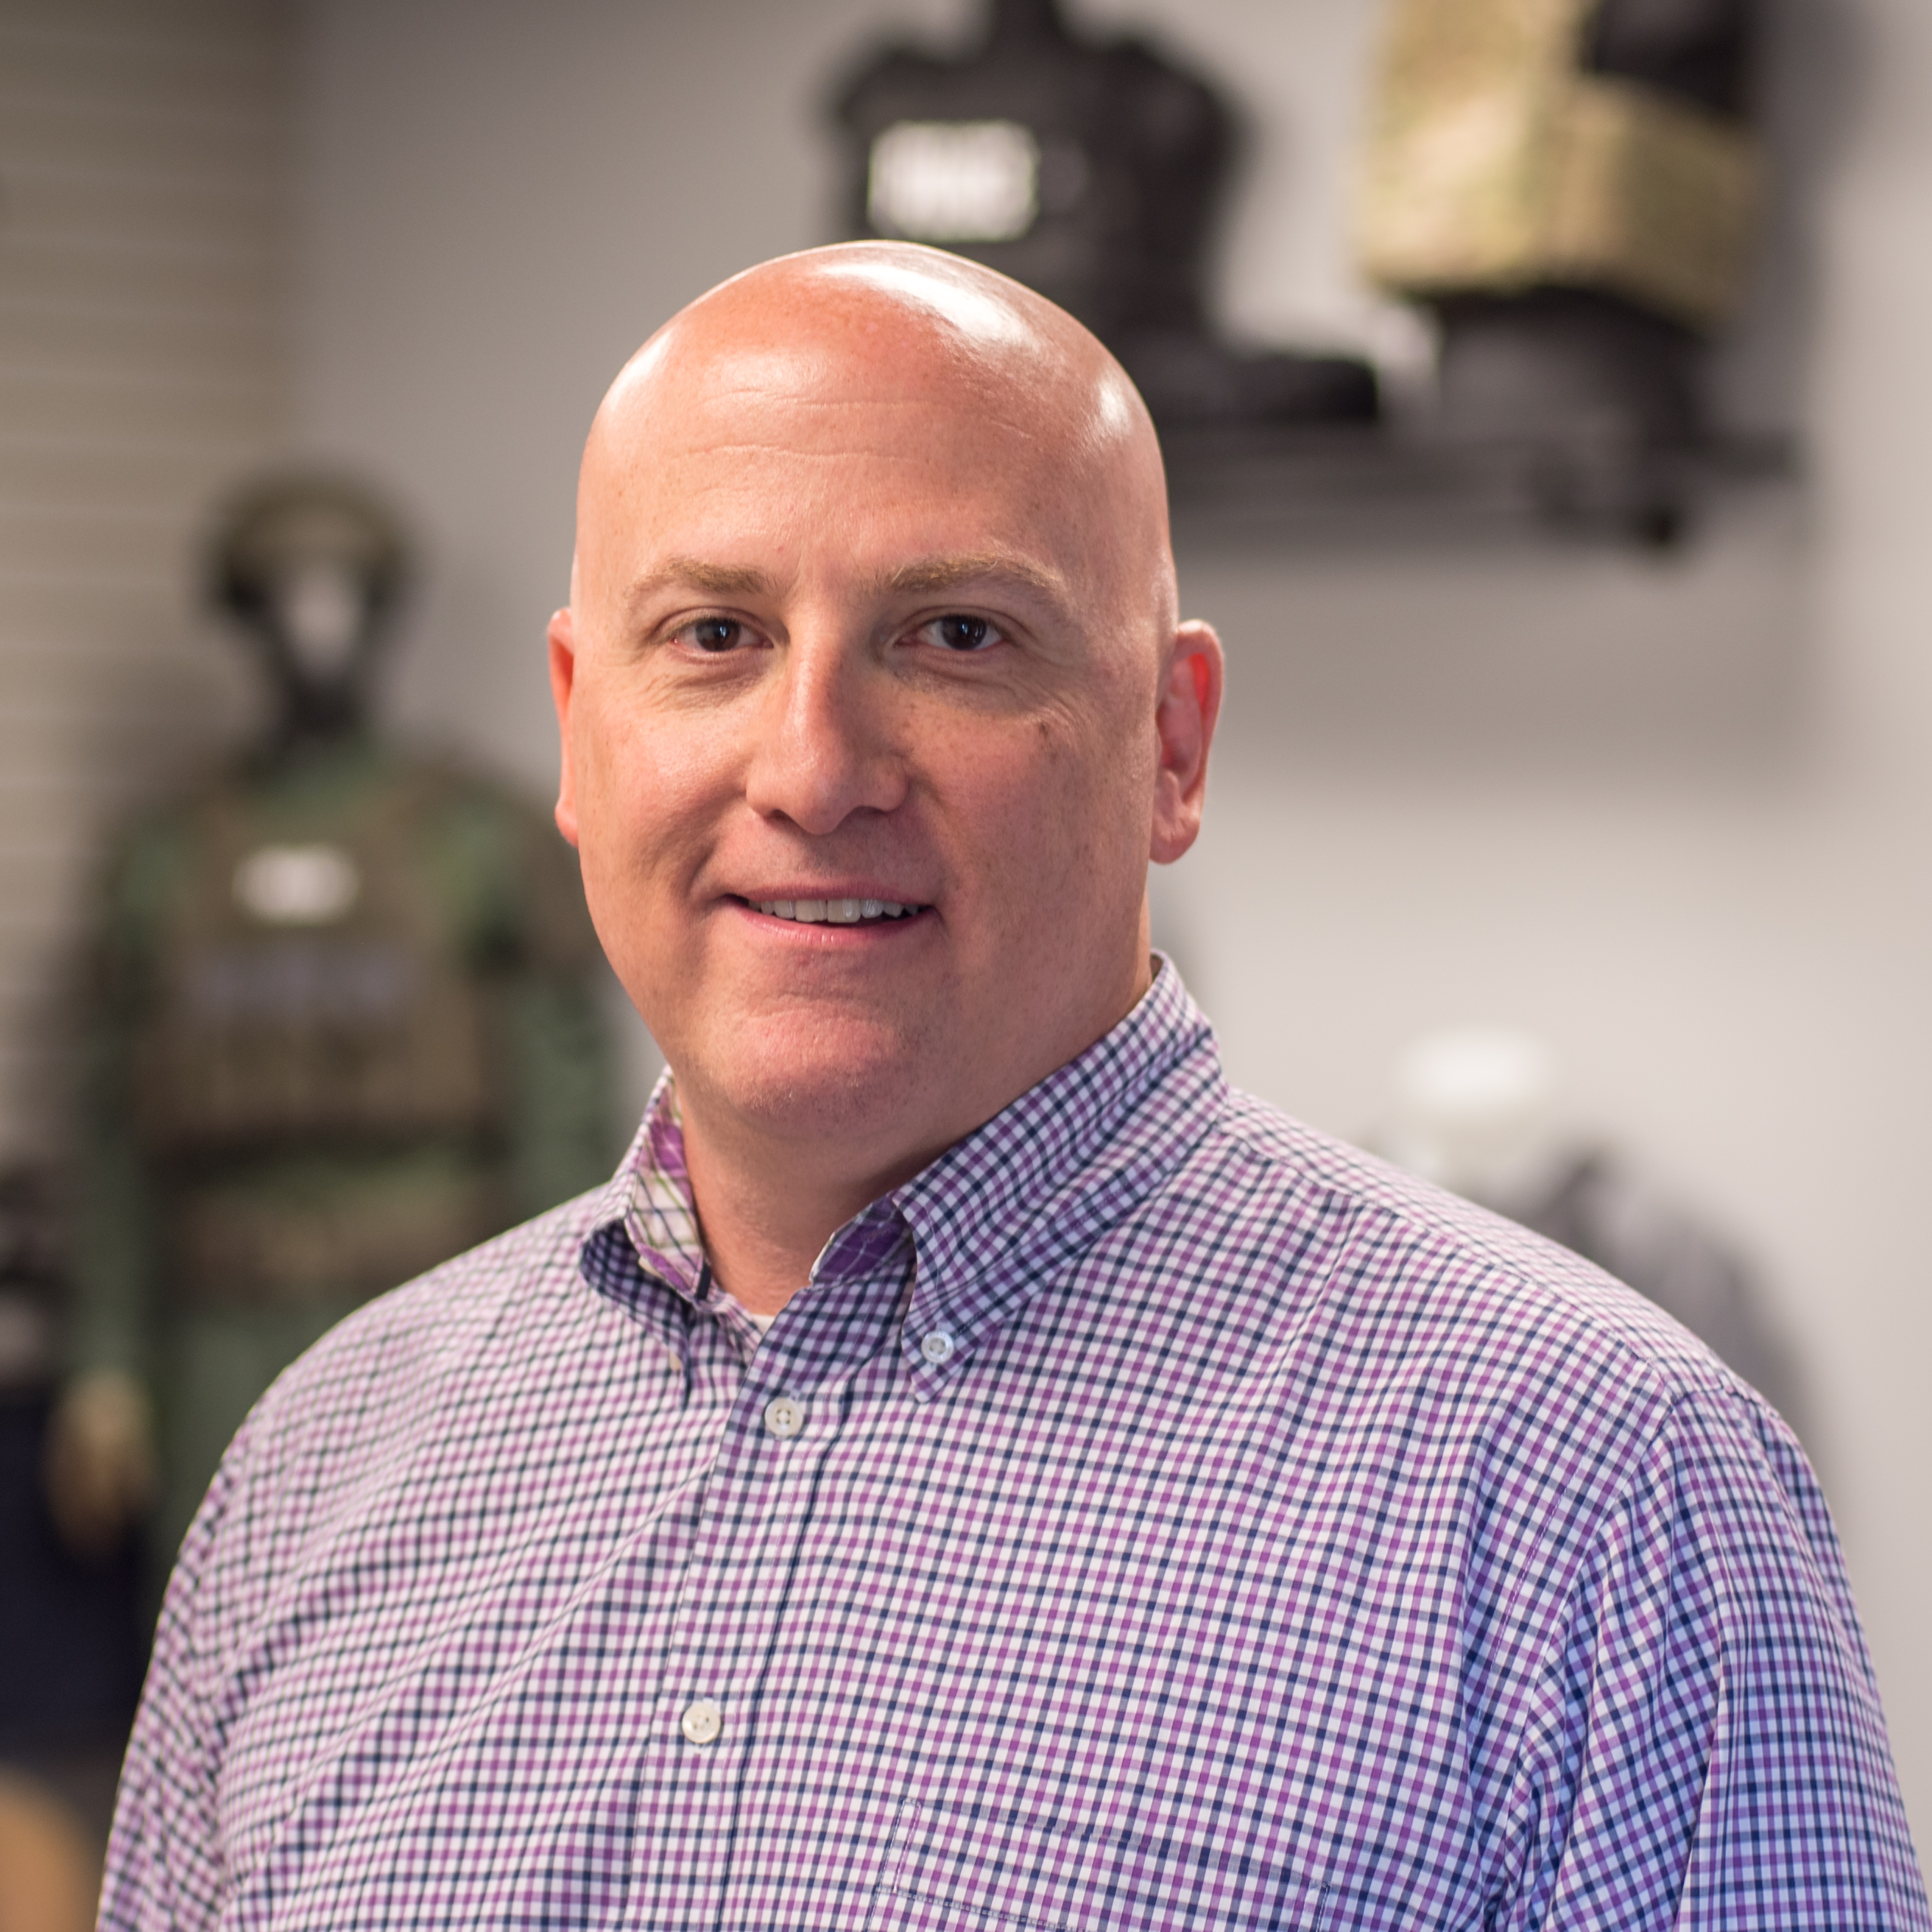 Industry Veteran Frank Cappo Joins Armor Express as its New